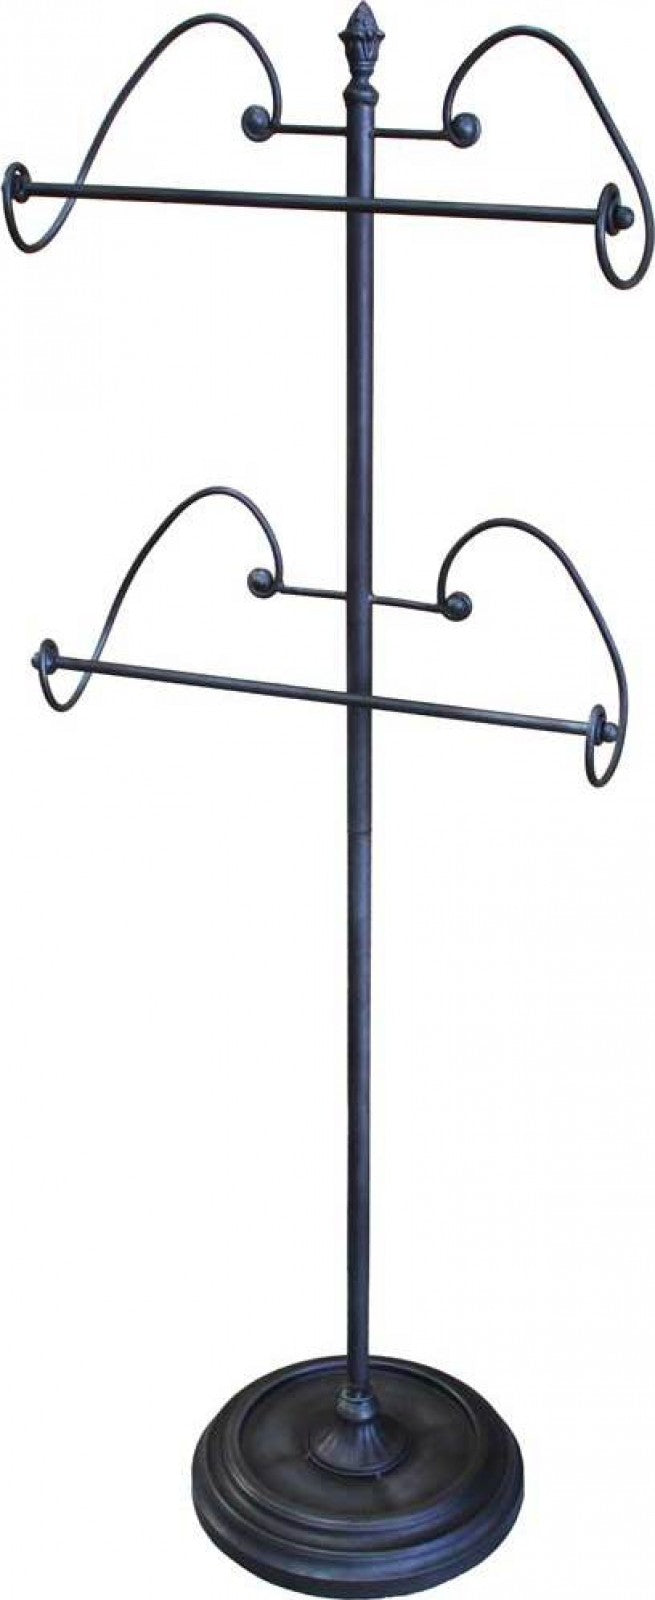 Metal Rail On Stand